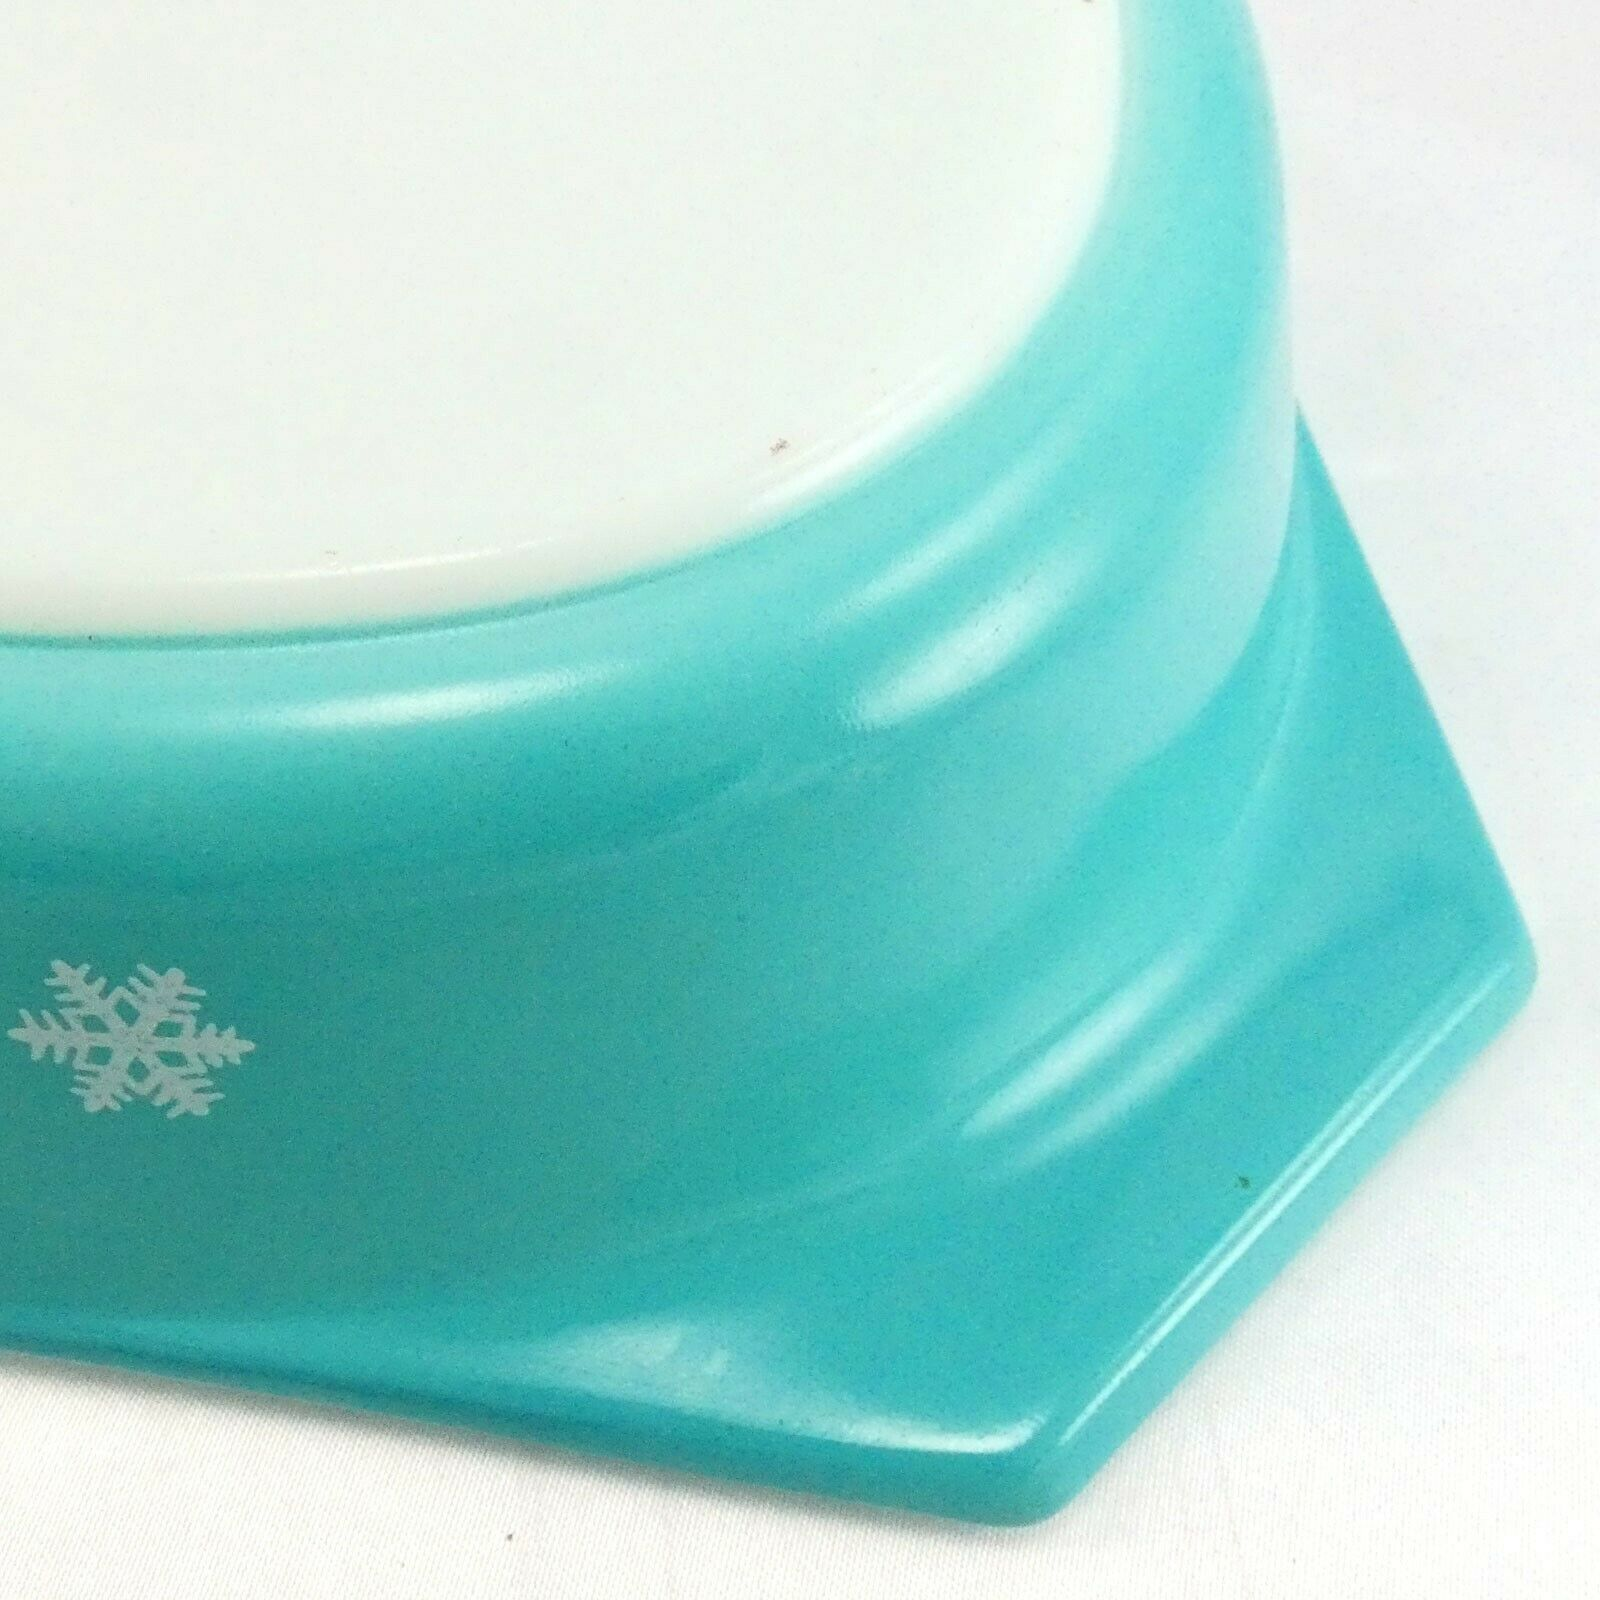 Pyrex Snowflake Turquoise Divided Dish 1.5qt ~ Made in the USA image 6